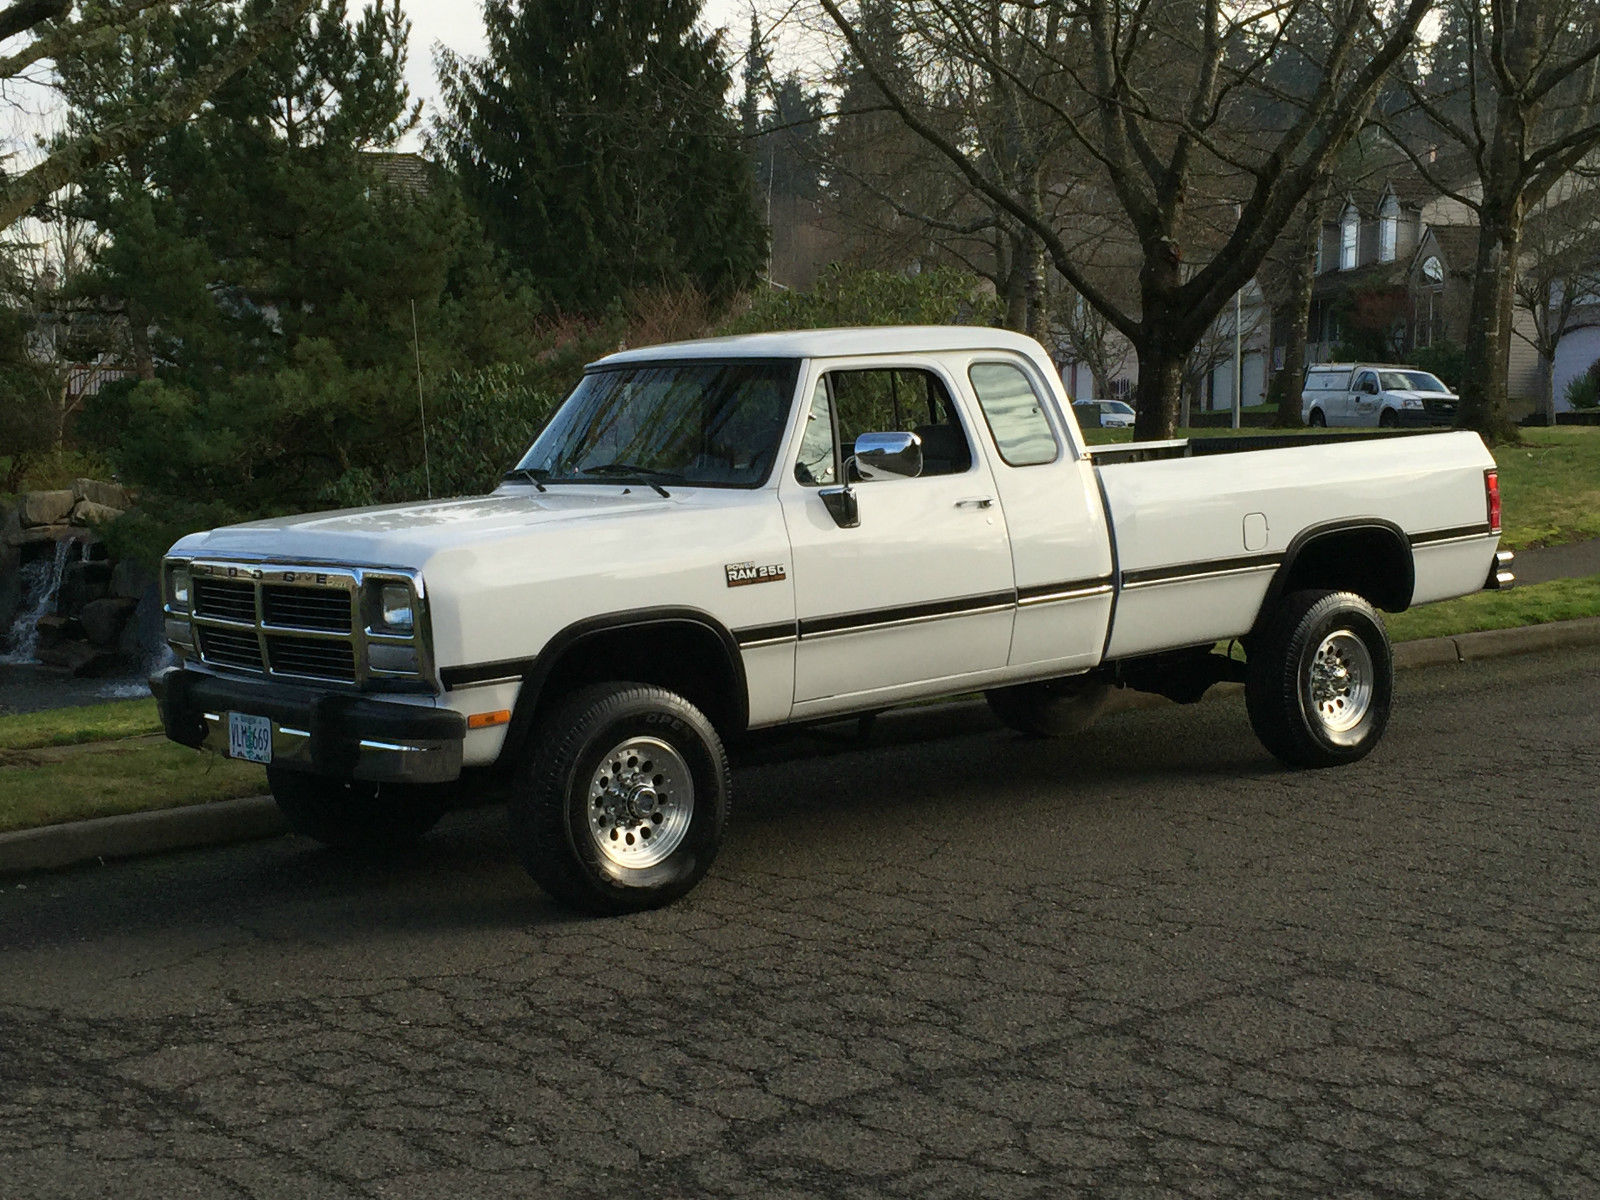 1993 dodge ram 2500 4x4 extra cab cummins diesel first gen 116k miles like new for sale in. Black Bedroom Furniture Sets. Home Design Ideas